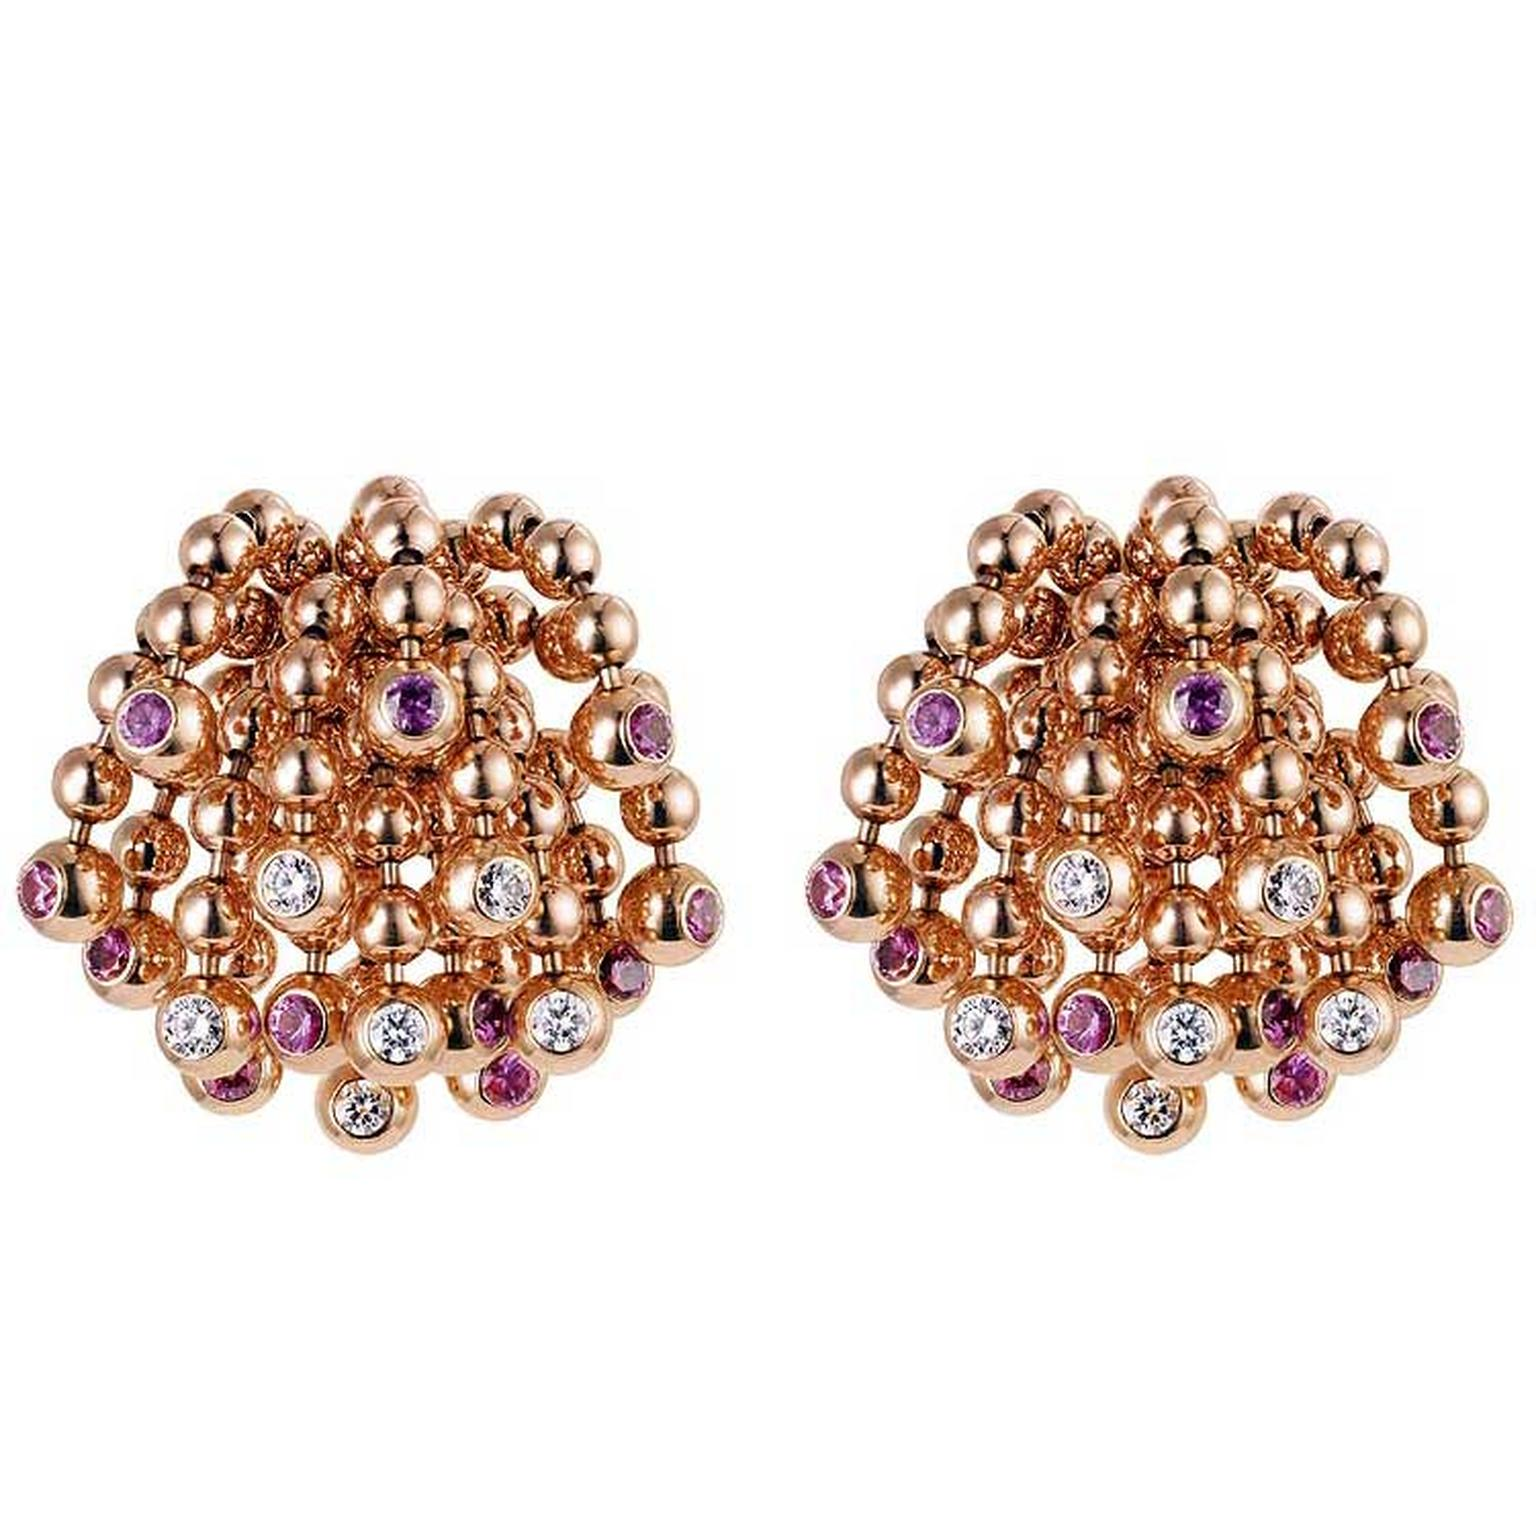 Cartier Paris Nouvelle Vague Sparkling rose gold earrings with diamonds and pink sapphires